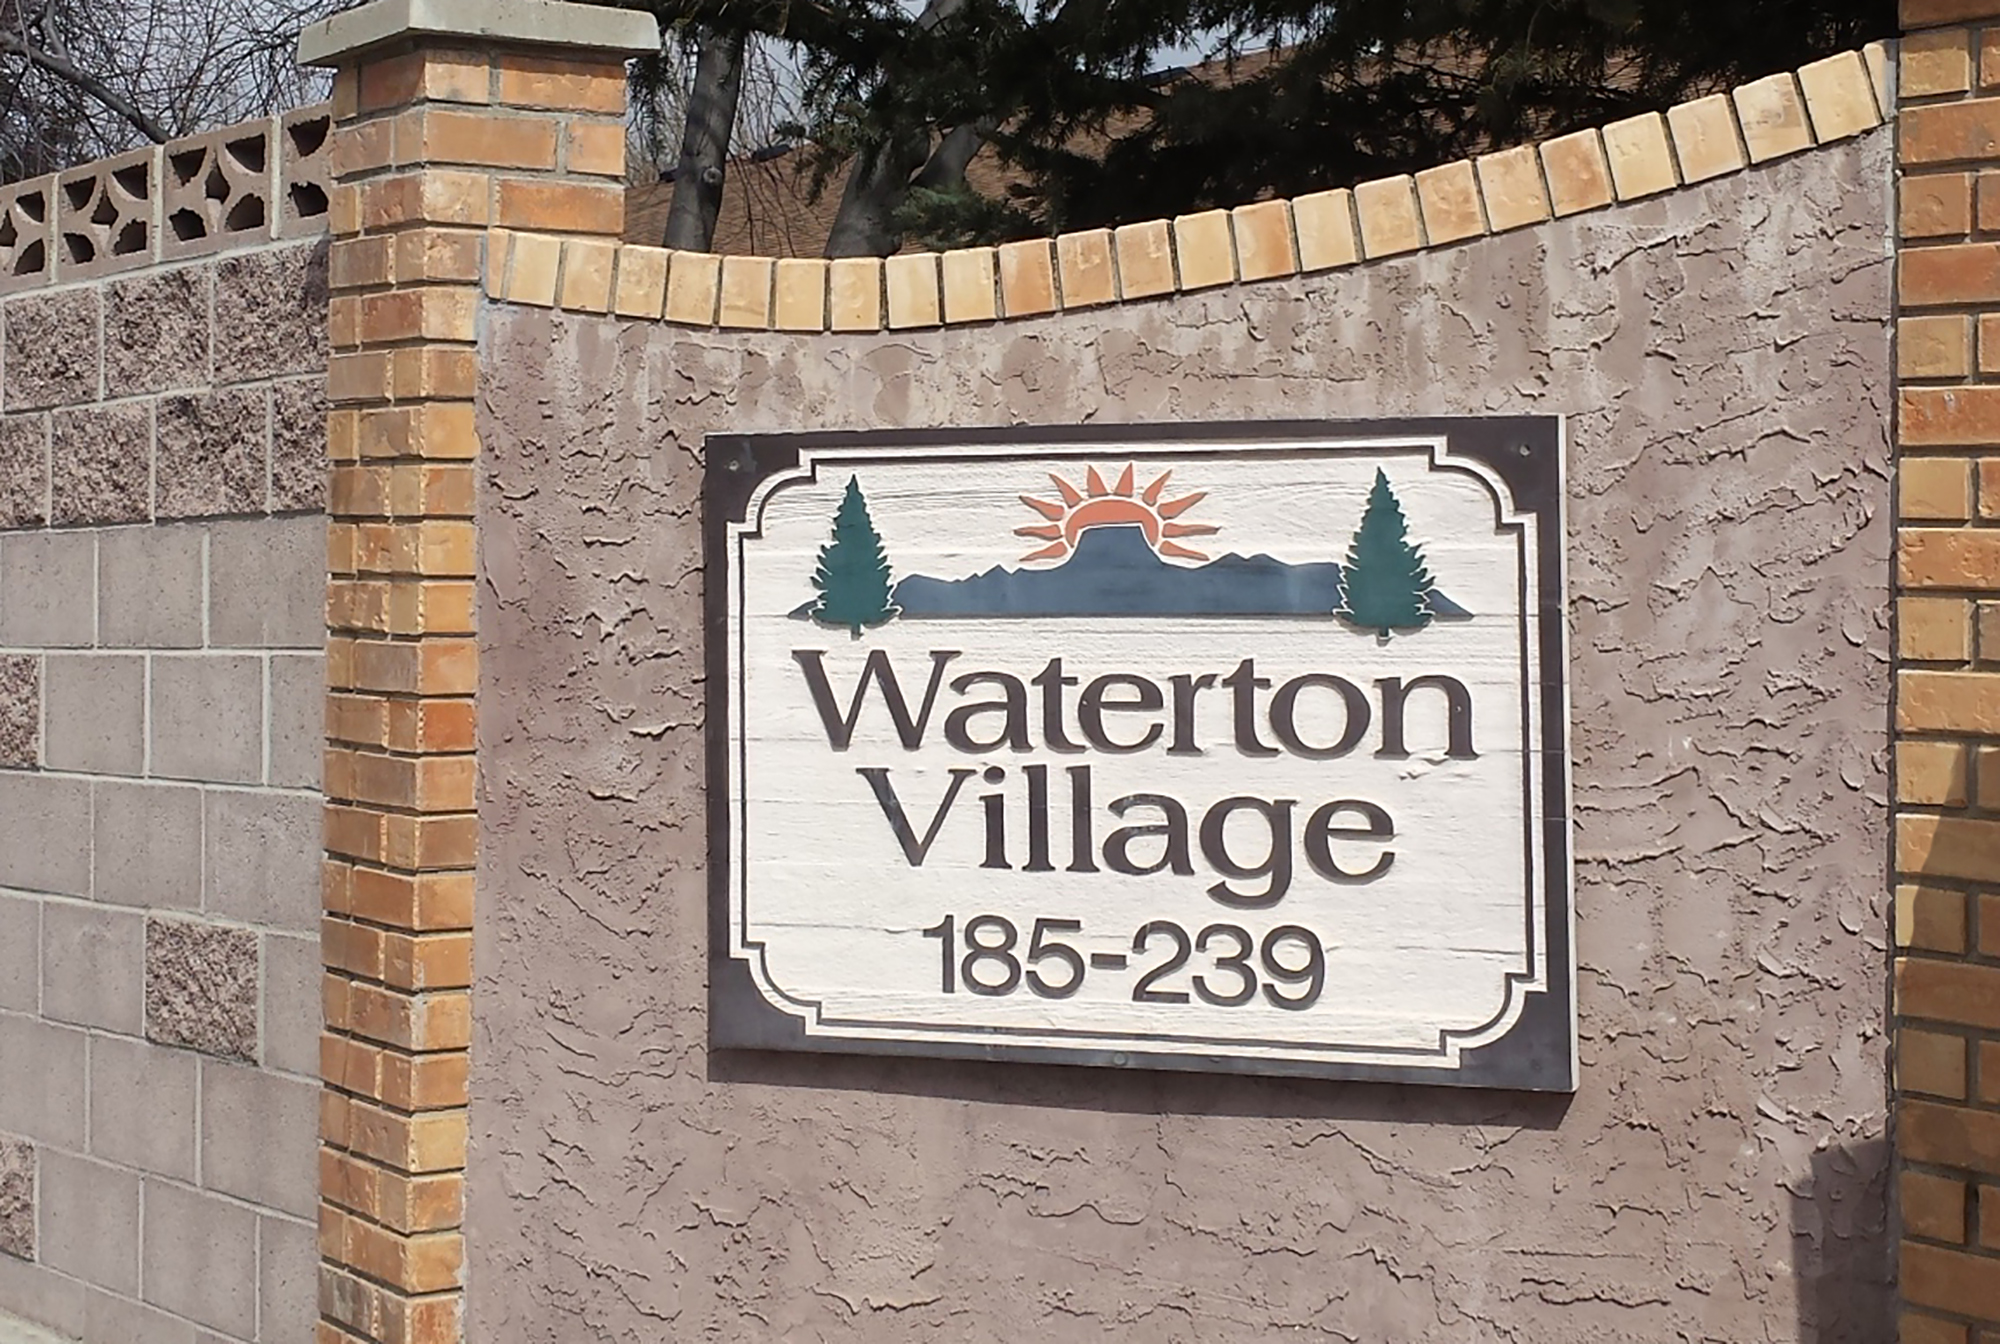 Waterton Village cover image